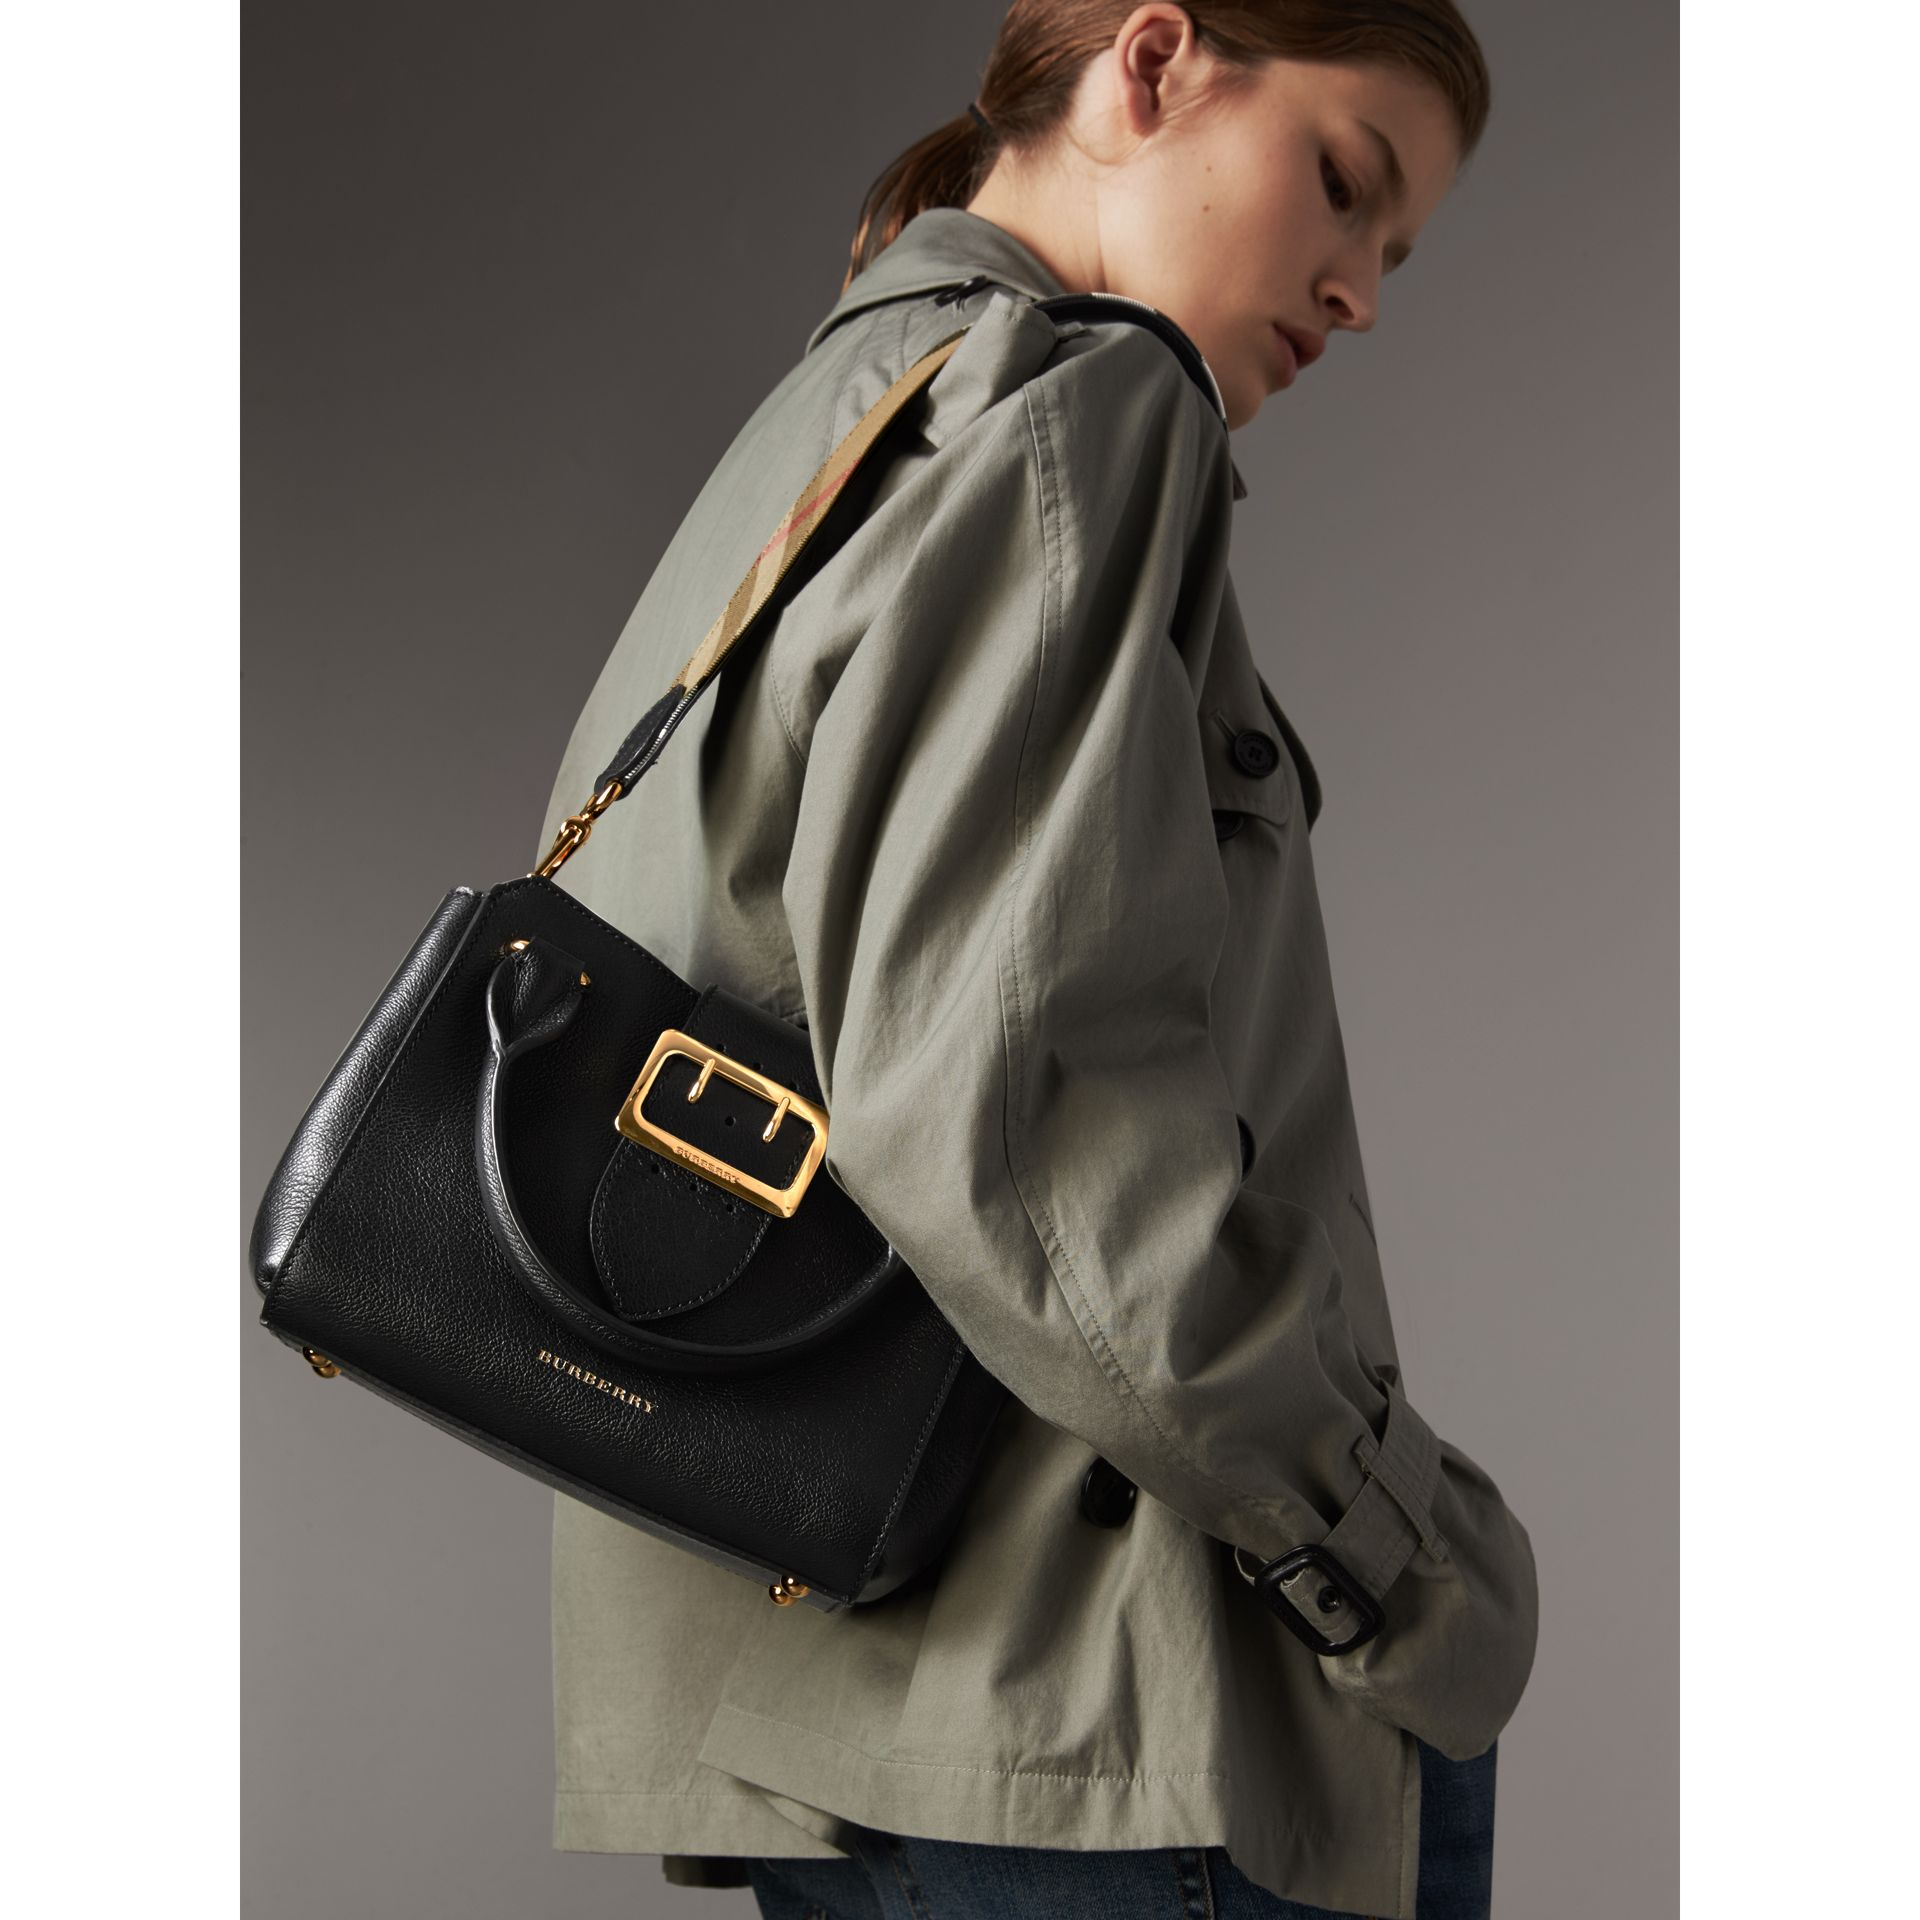 1f7ee9a6af2 Burberry The Small Buckle Tote in Grainy Leather at £975 | love the ...